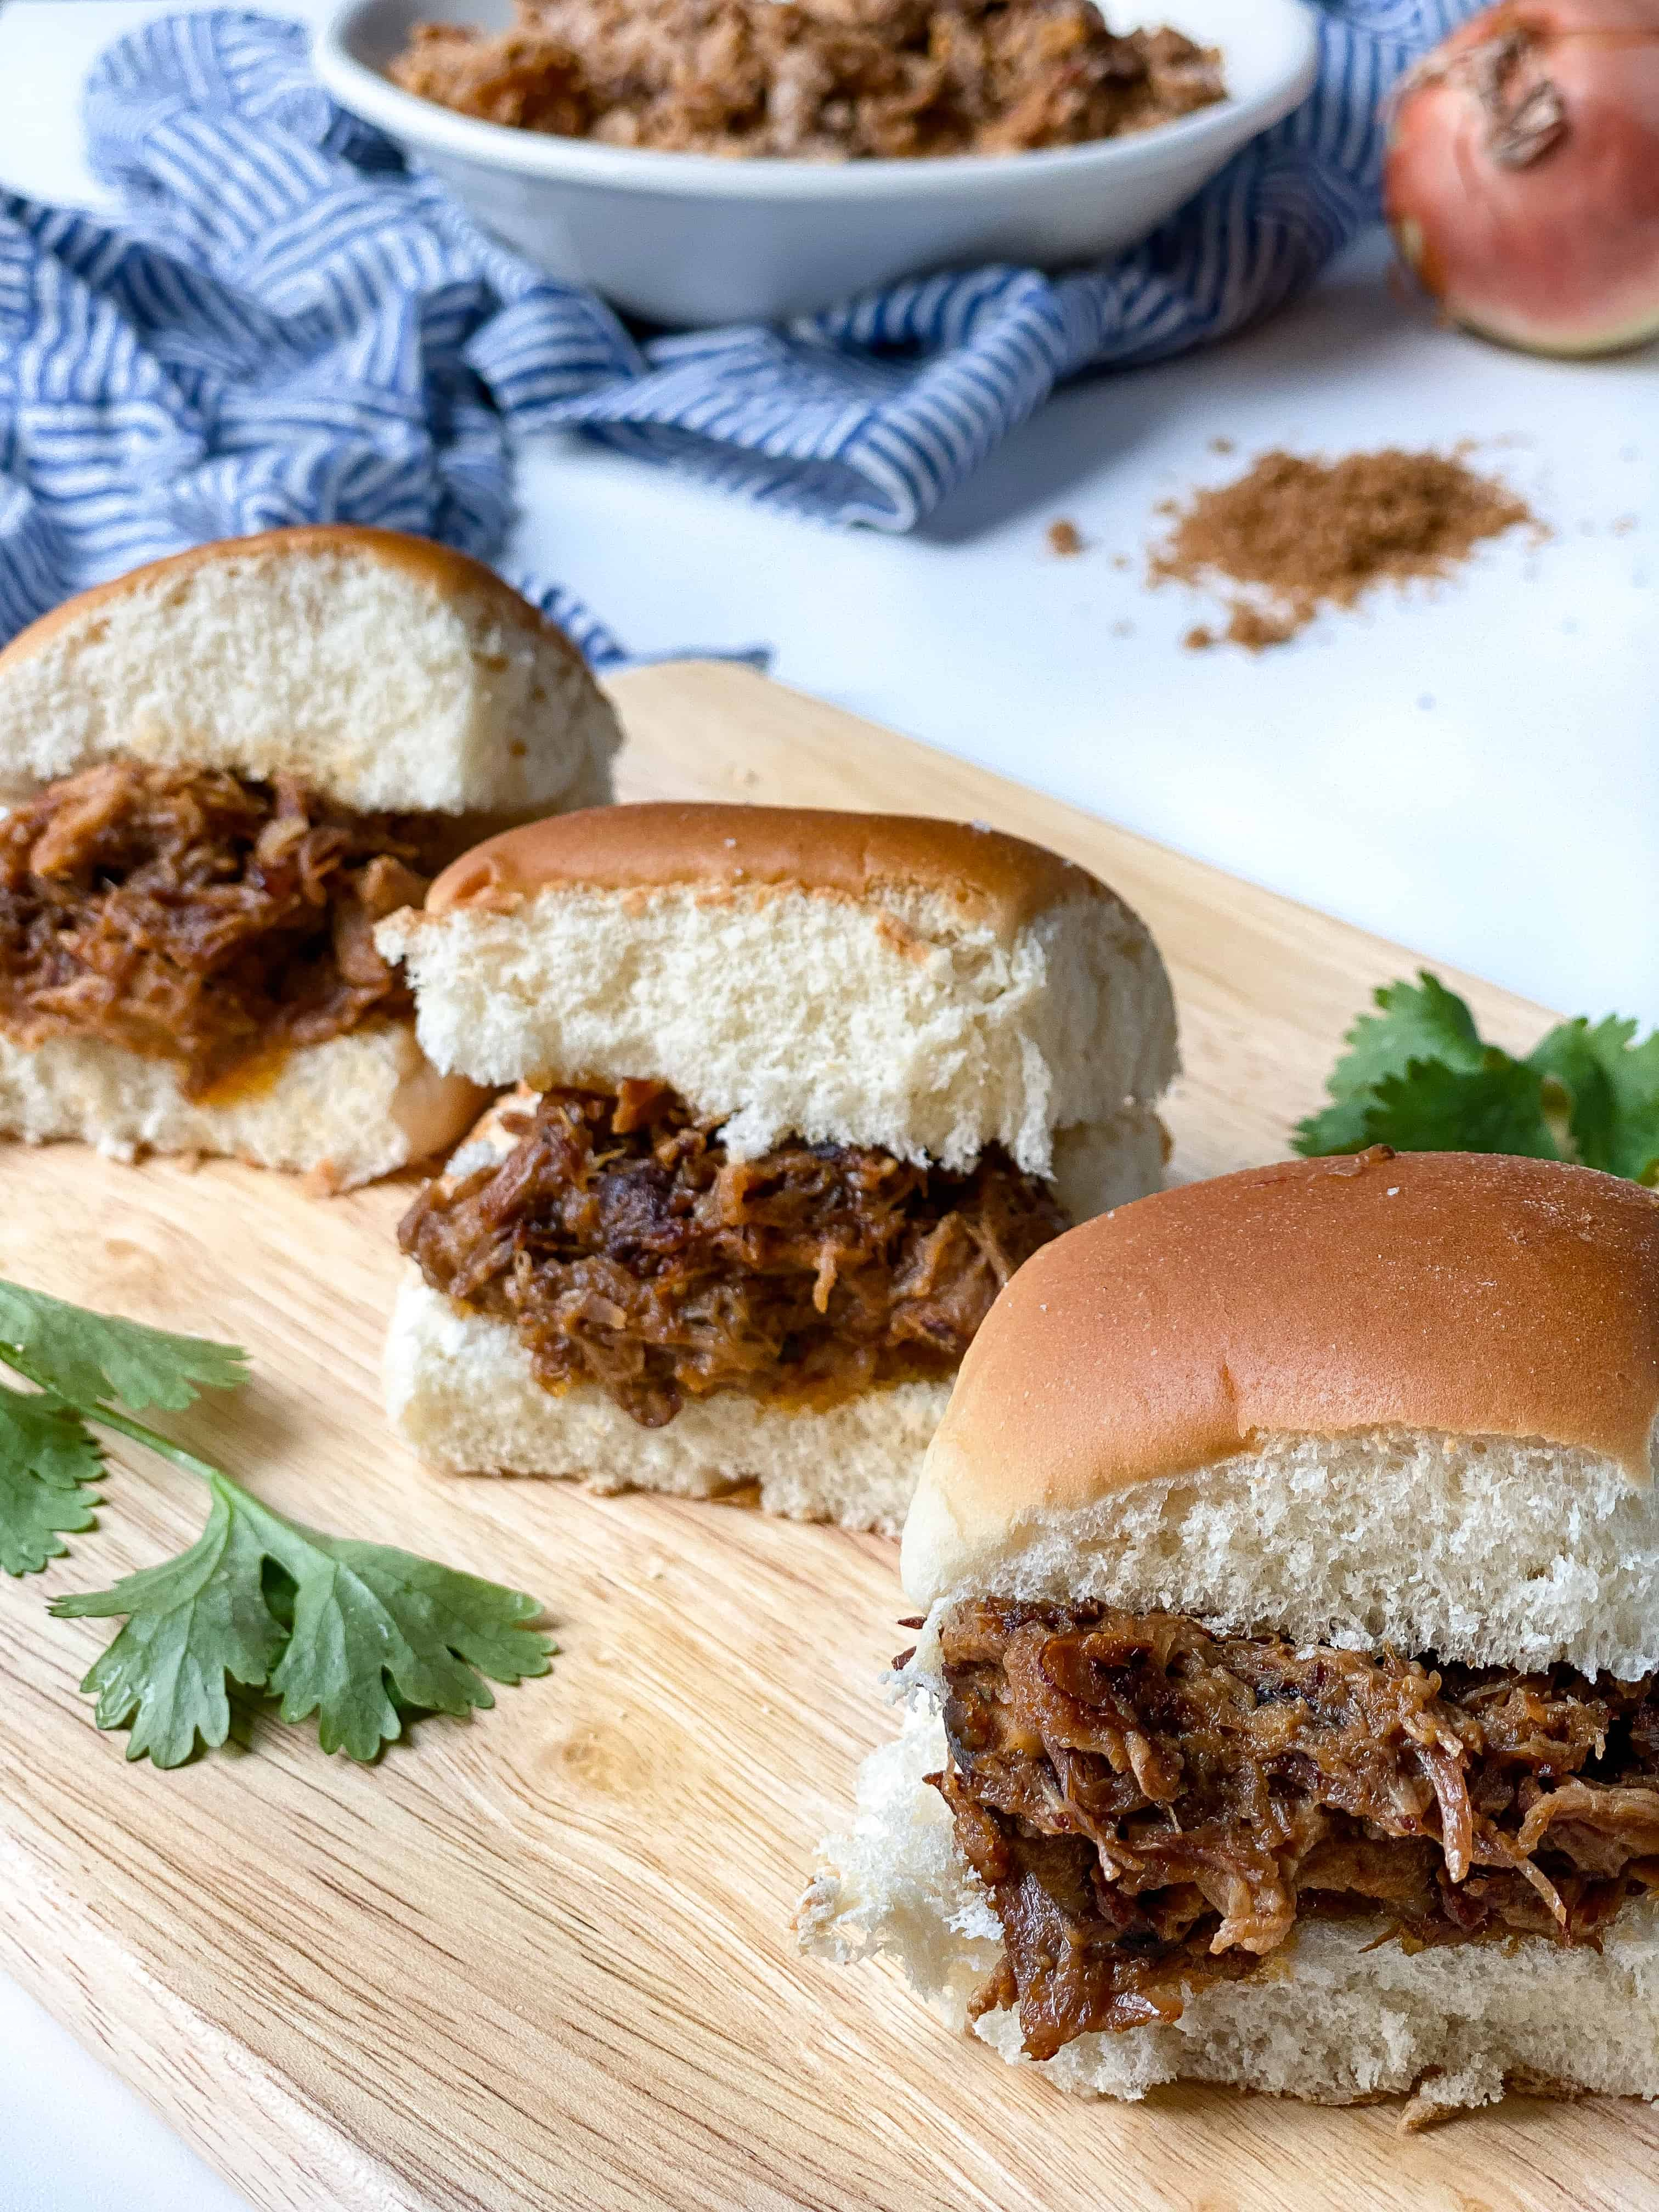 BBQ Pulled Pork with Pineapple & Soy (Instant Pot)